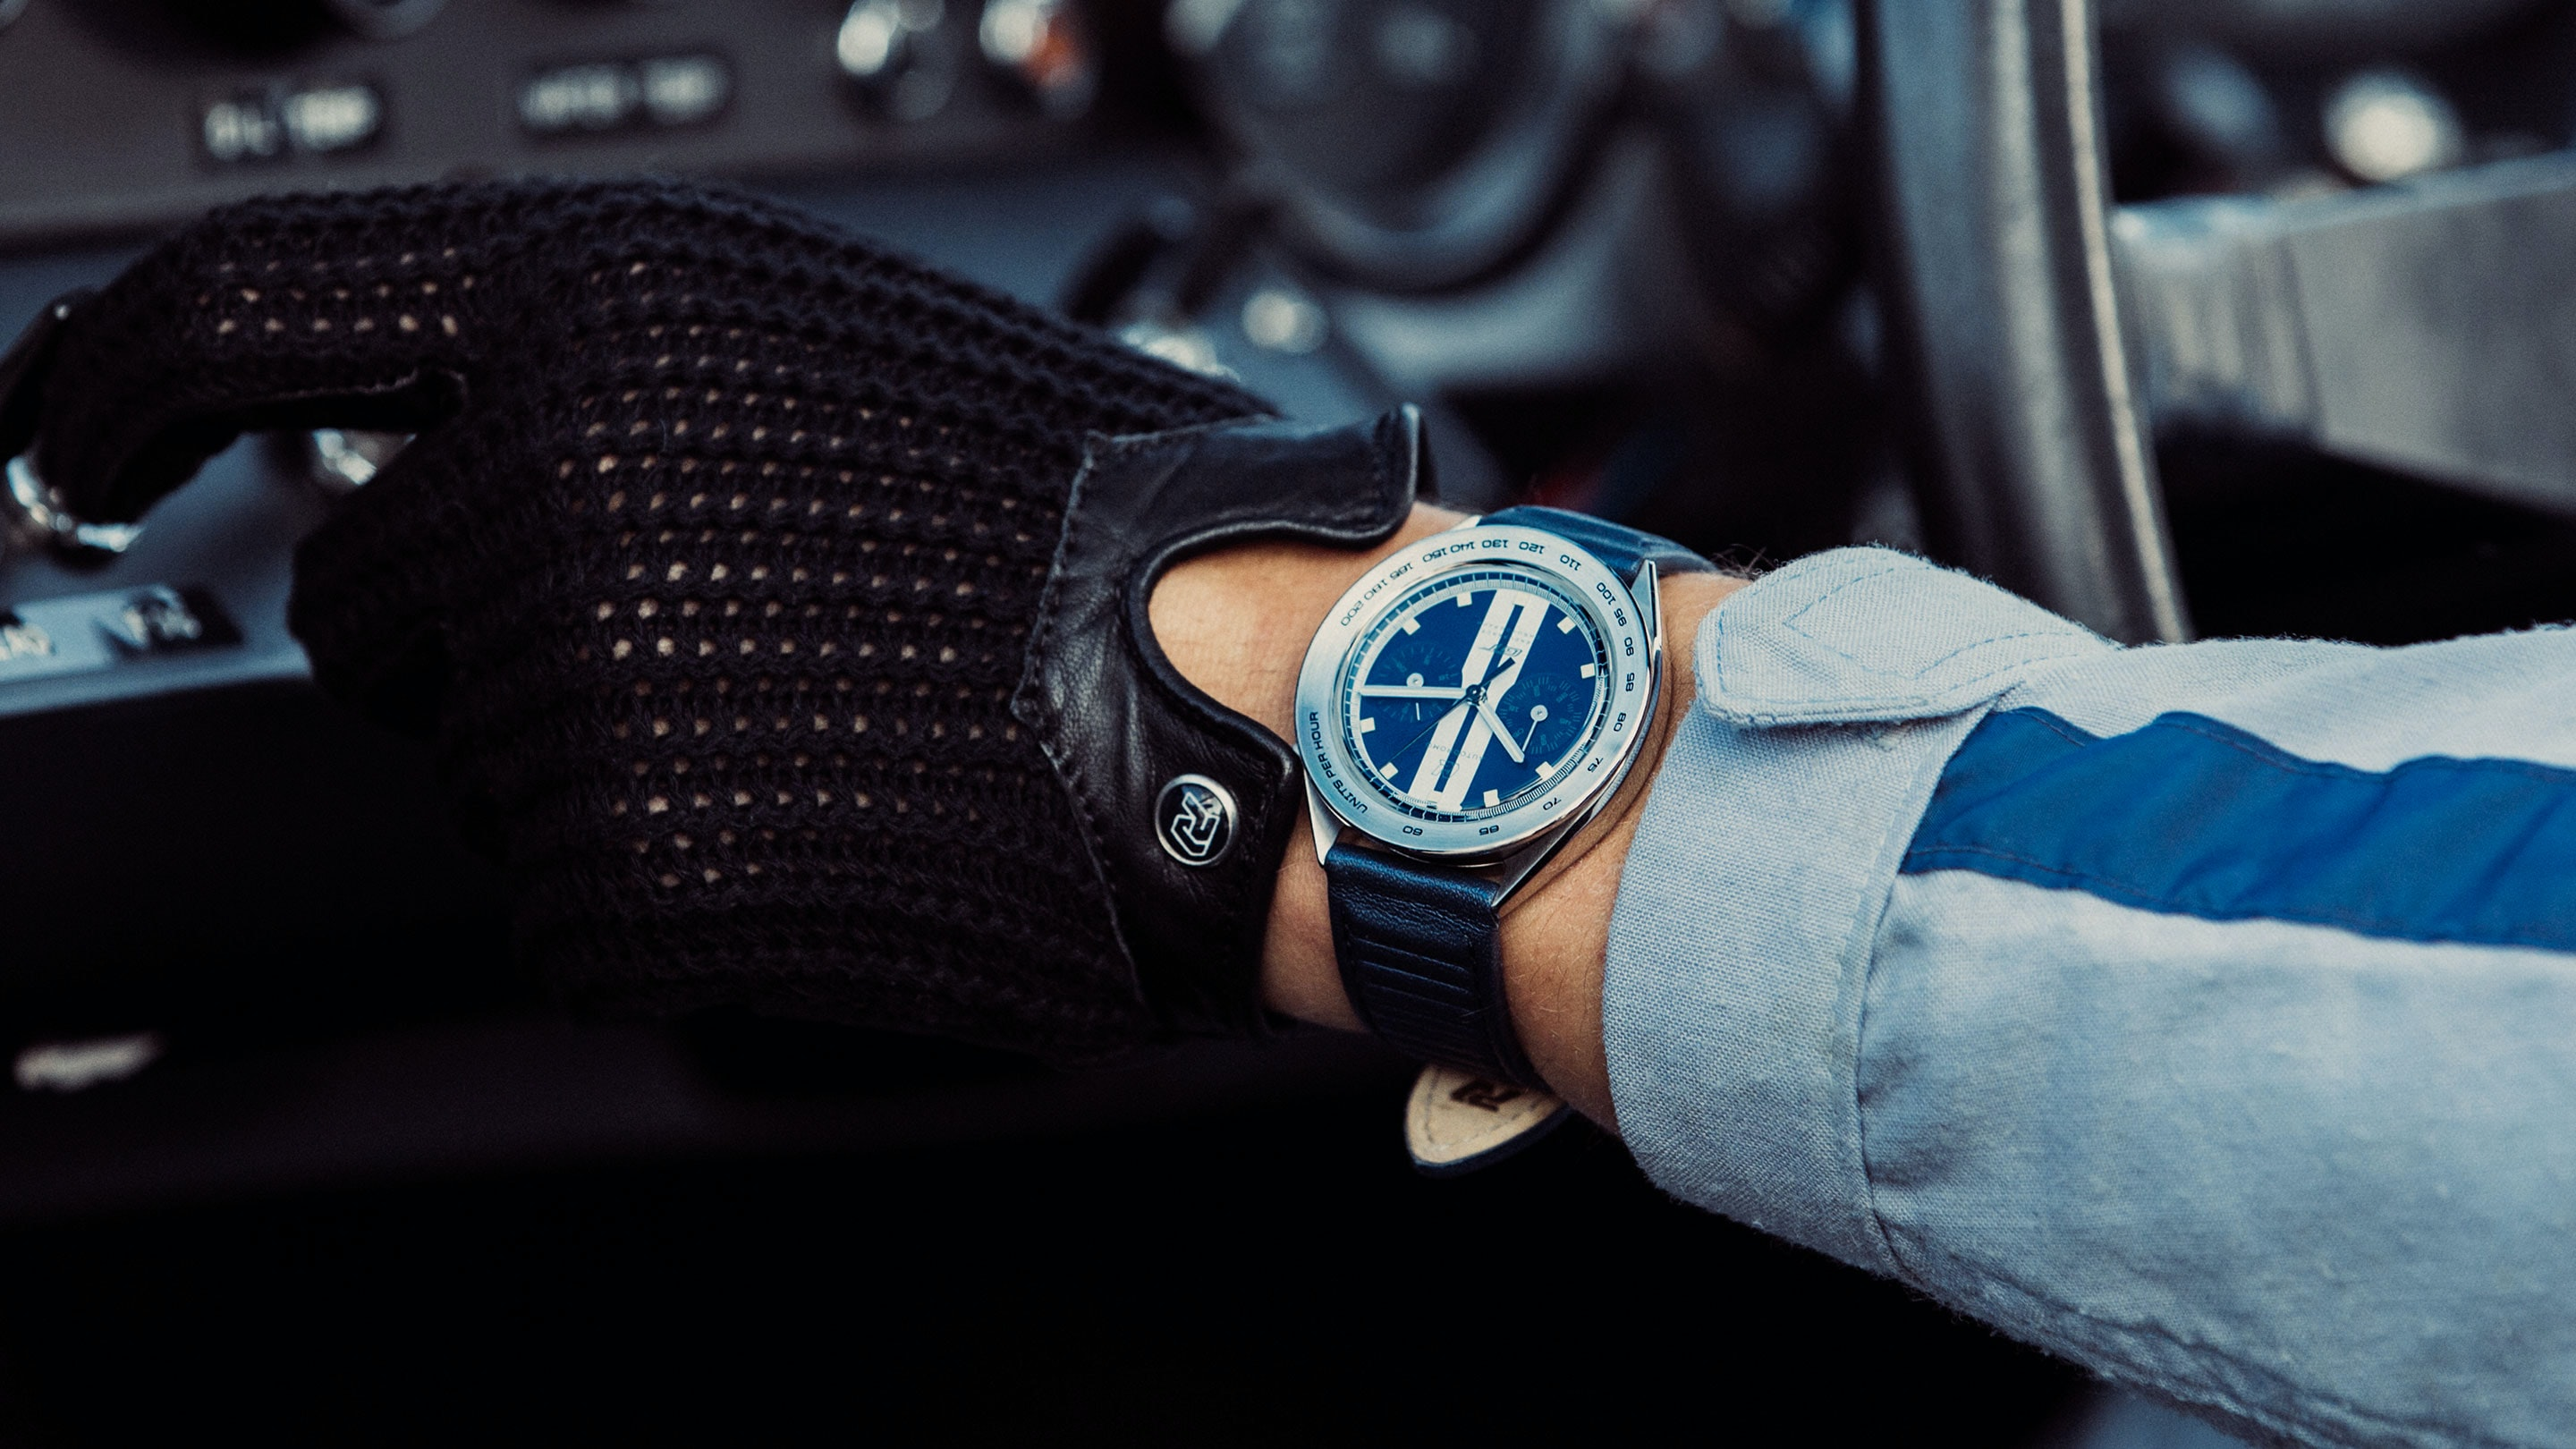 Auto hero.jpg?ixlib=rails 1.1 Introducing: The Autodromo Ford GT Endurance Chronograph (And A Very Special GT Owner's Watch Too) Introducing: The Autodromo Ford GT Endurance Chronograph (And A Very Special GT Owner's Watch Too) auto hero